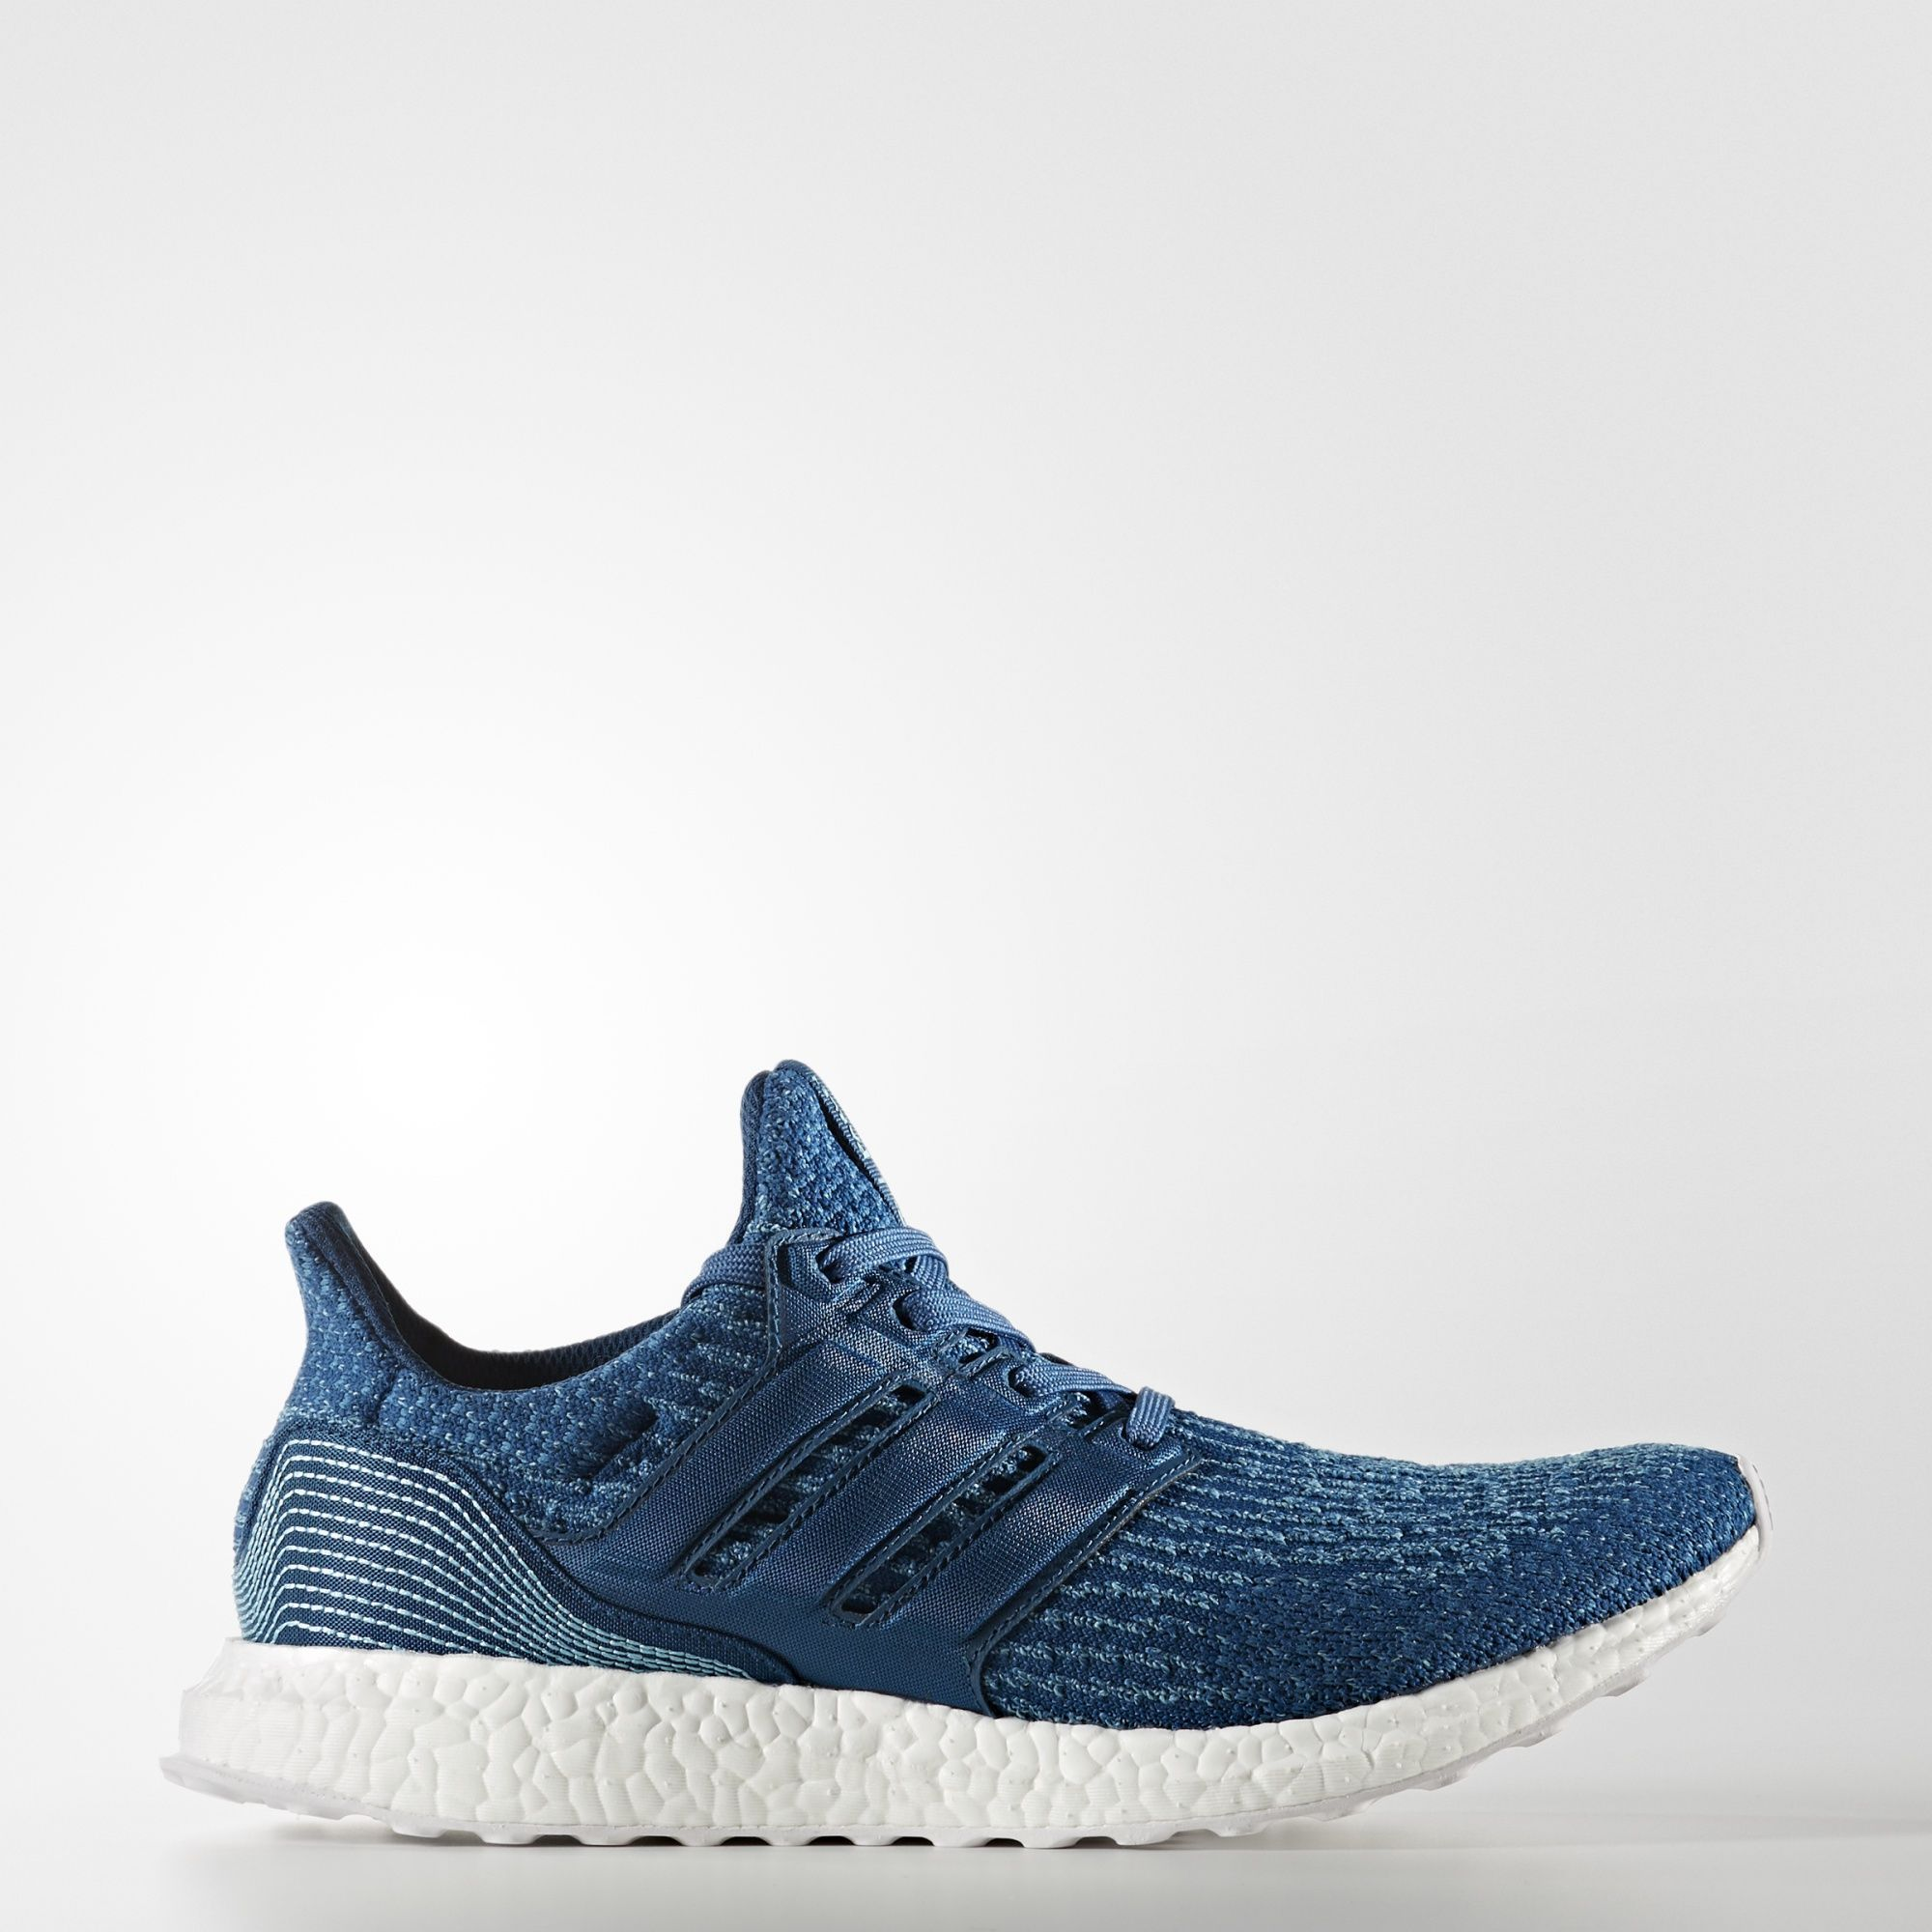 Ultraboost Parley Shoes | Design • Sneakers Shoes | Adidas